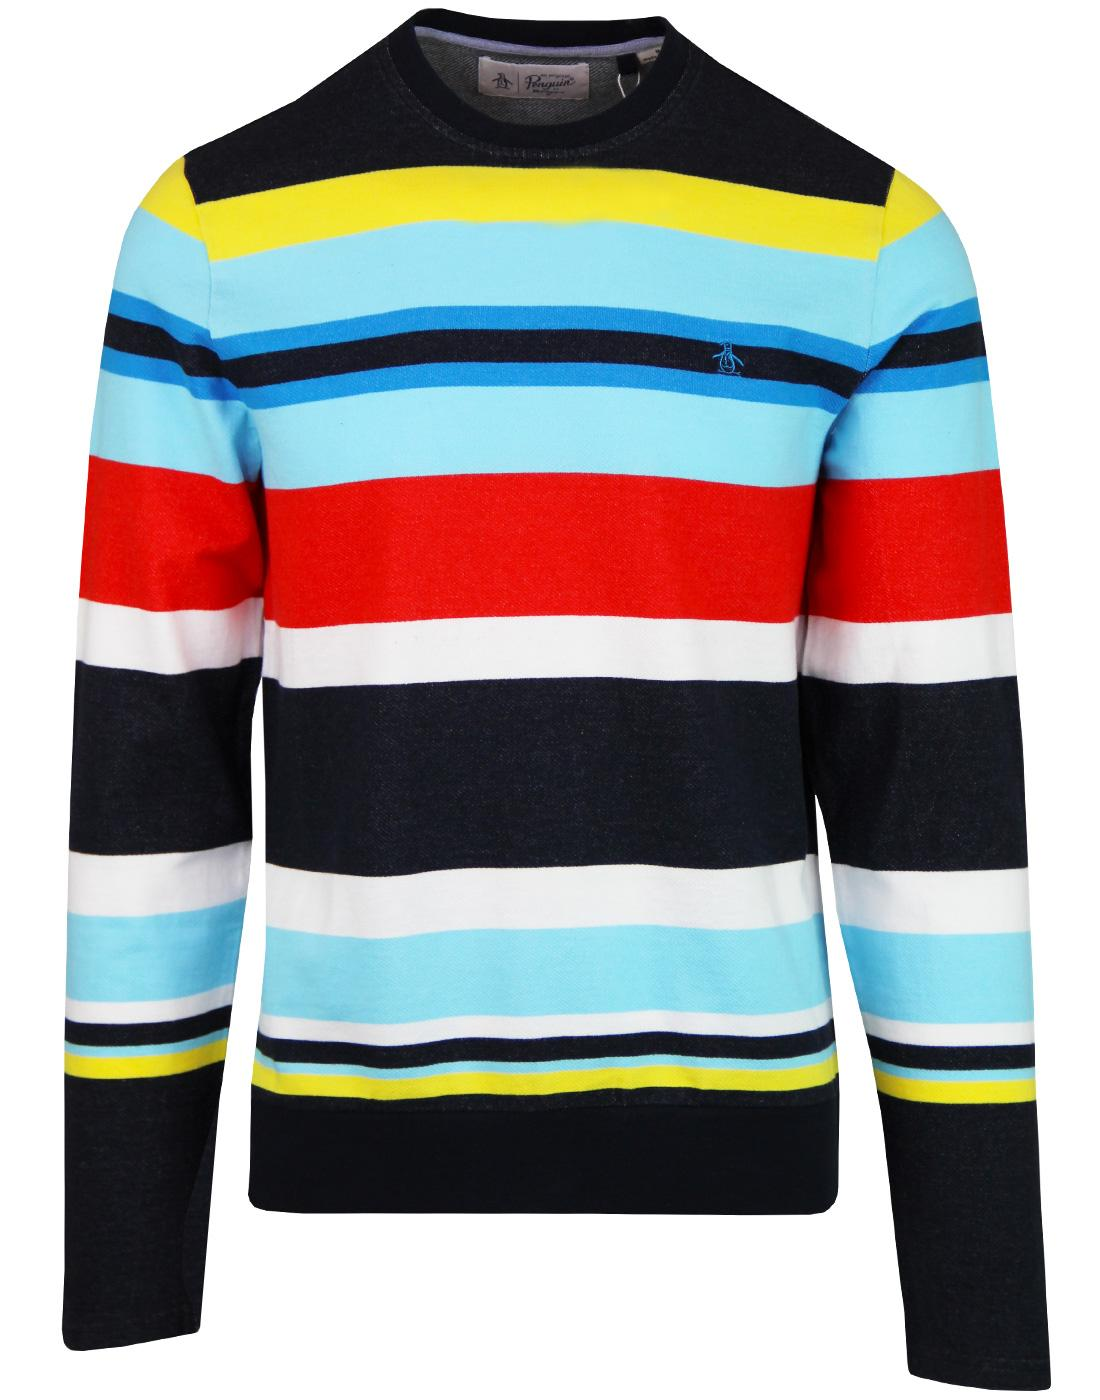 ORIGINAL PENGUIN Retro 70s Stripe Terry Sweatshirt